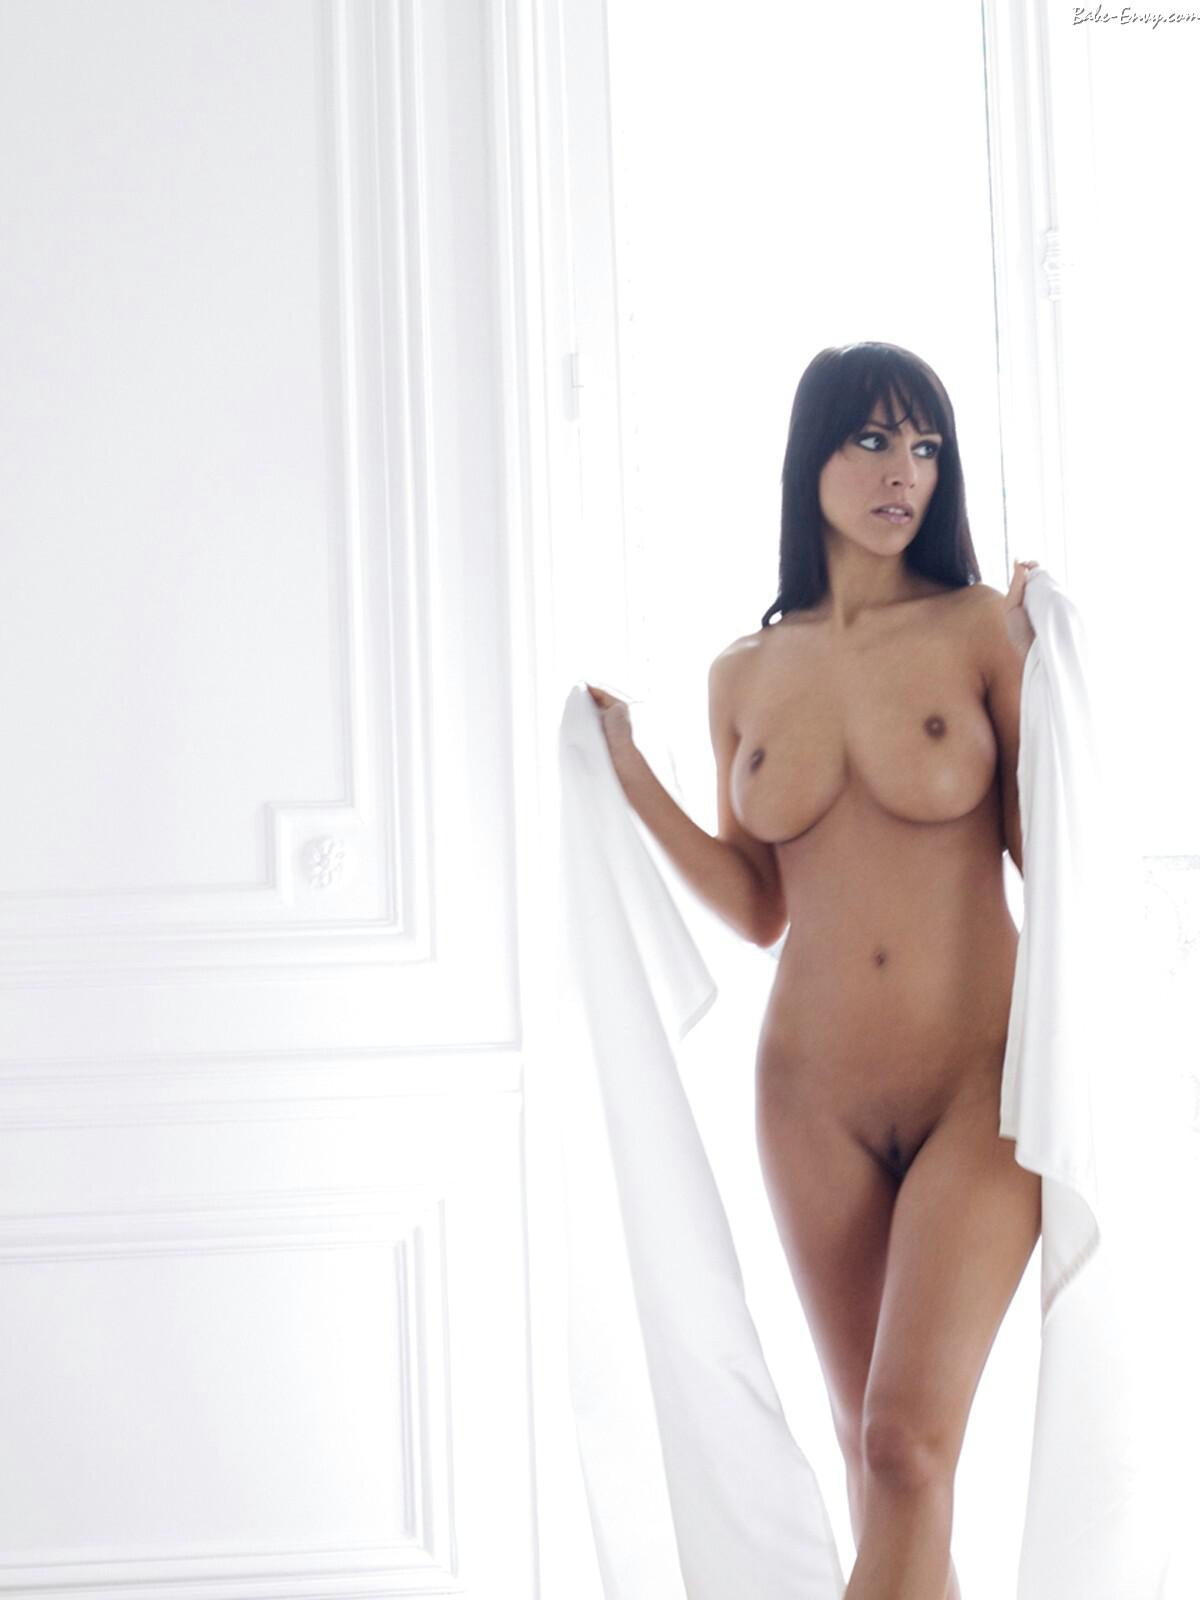 Swxy nude gurls nackt picture